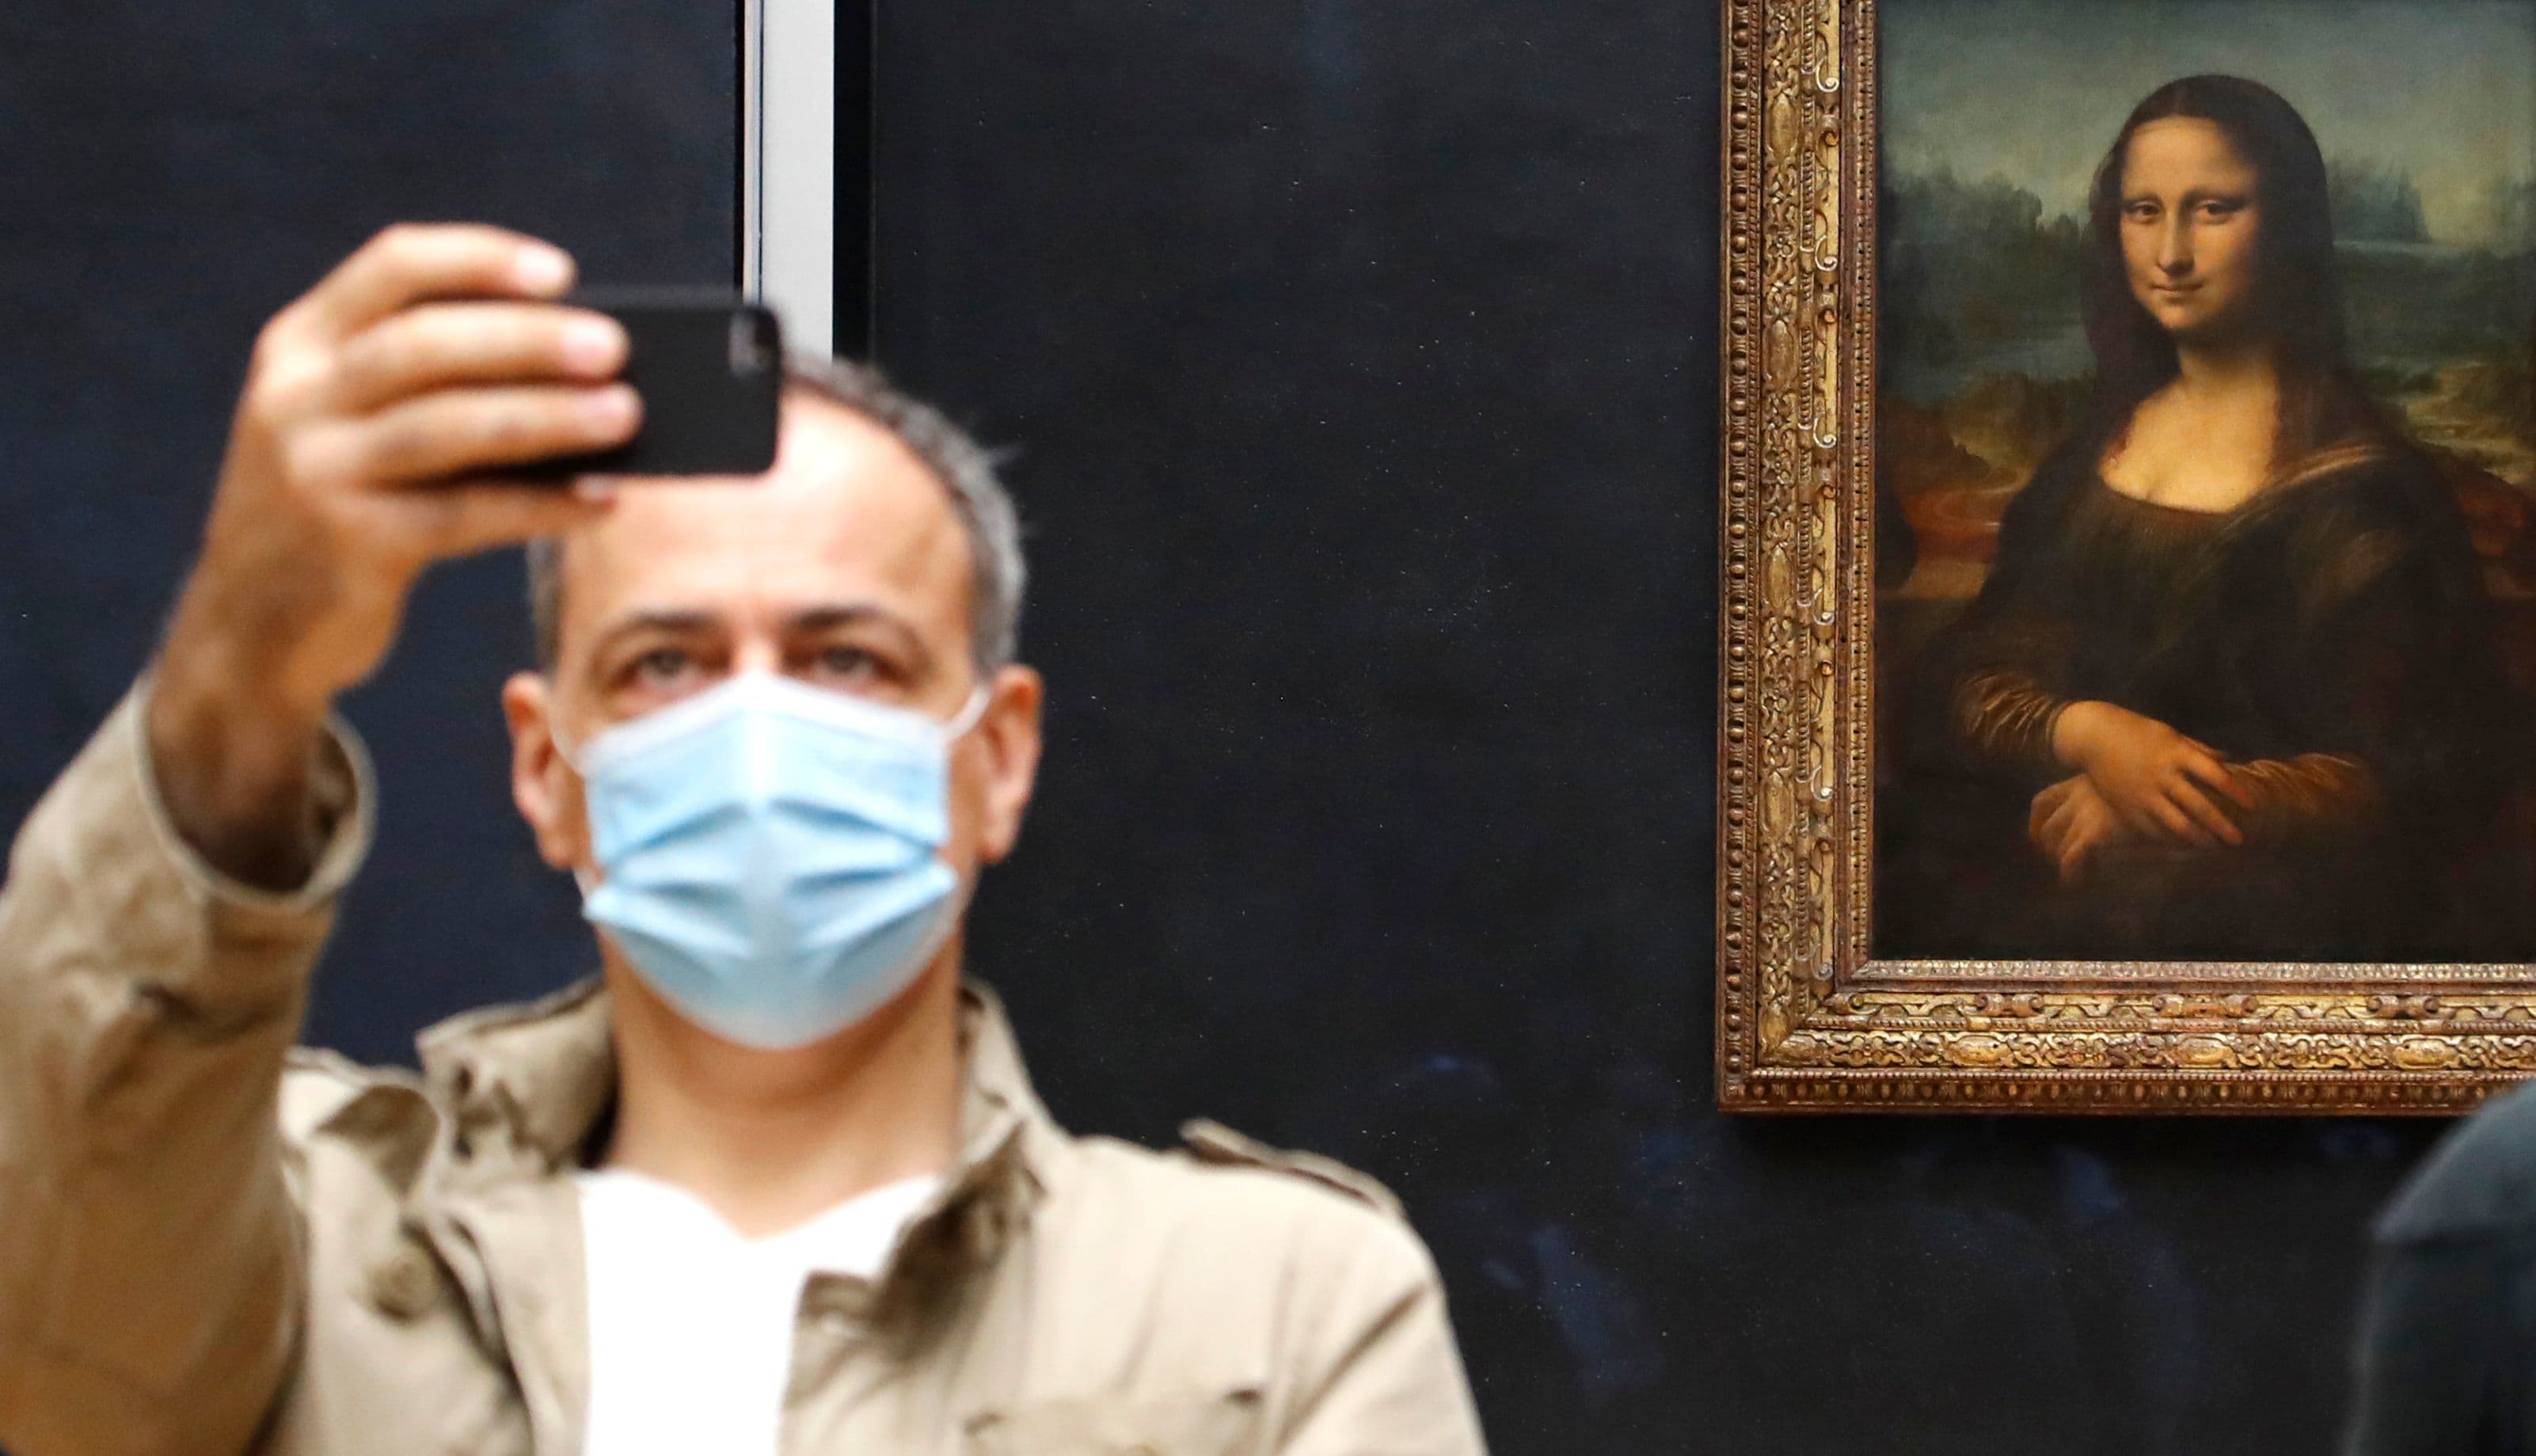 """A visitor wearing face mask takes a picture in front of Leonardo da Vinci's masterpiece """"Mona Lisa"""" also known as """"La Gioconda"""" at the Louvre Museum in Paris on July 6. — AFP"""